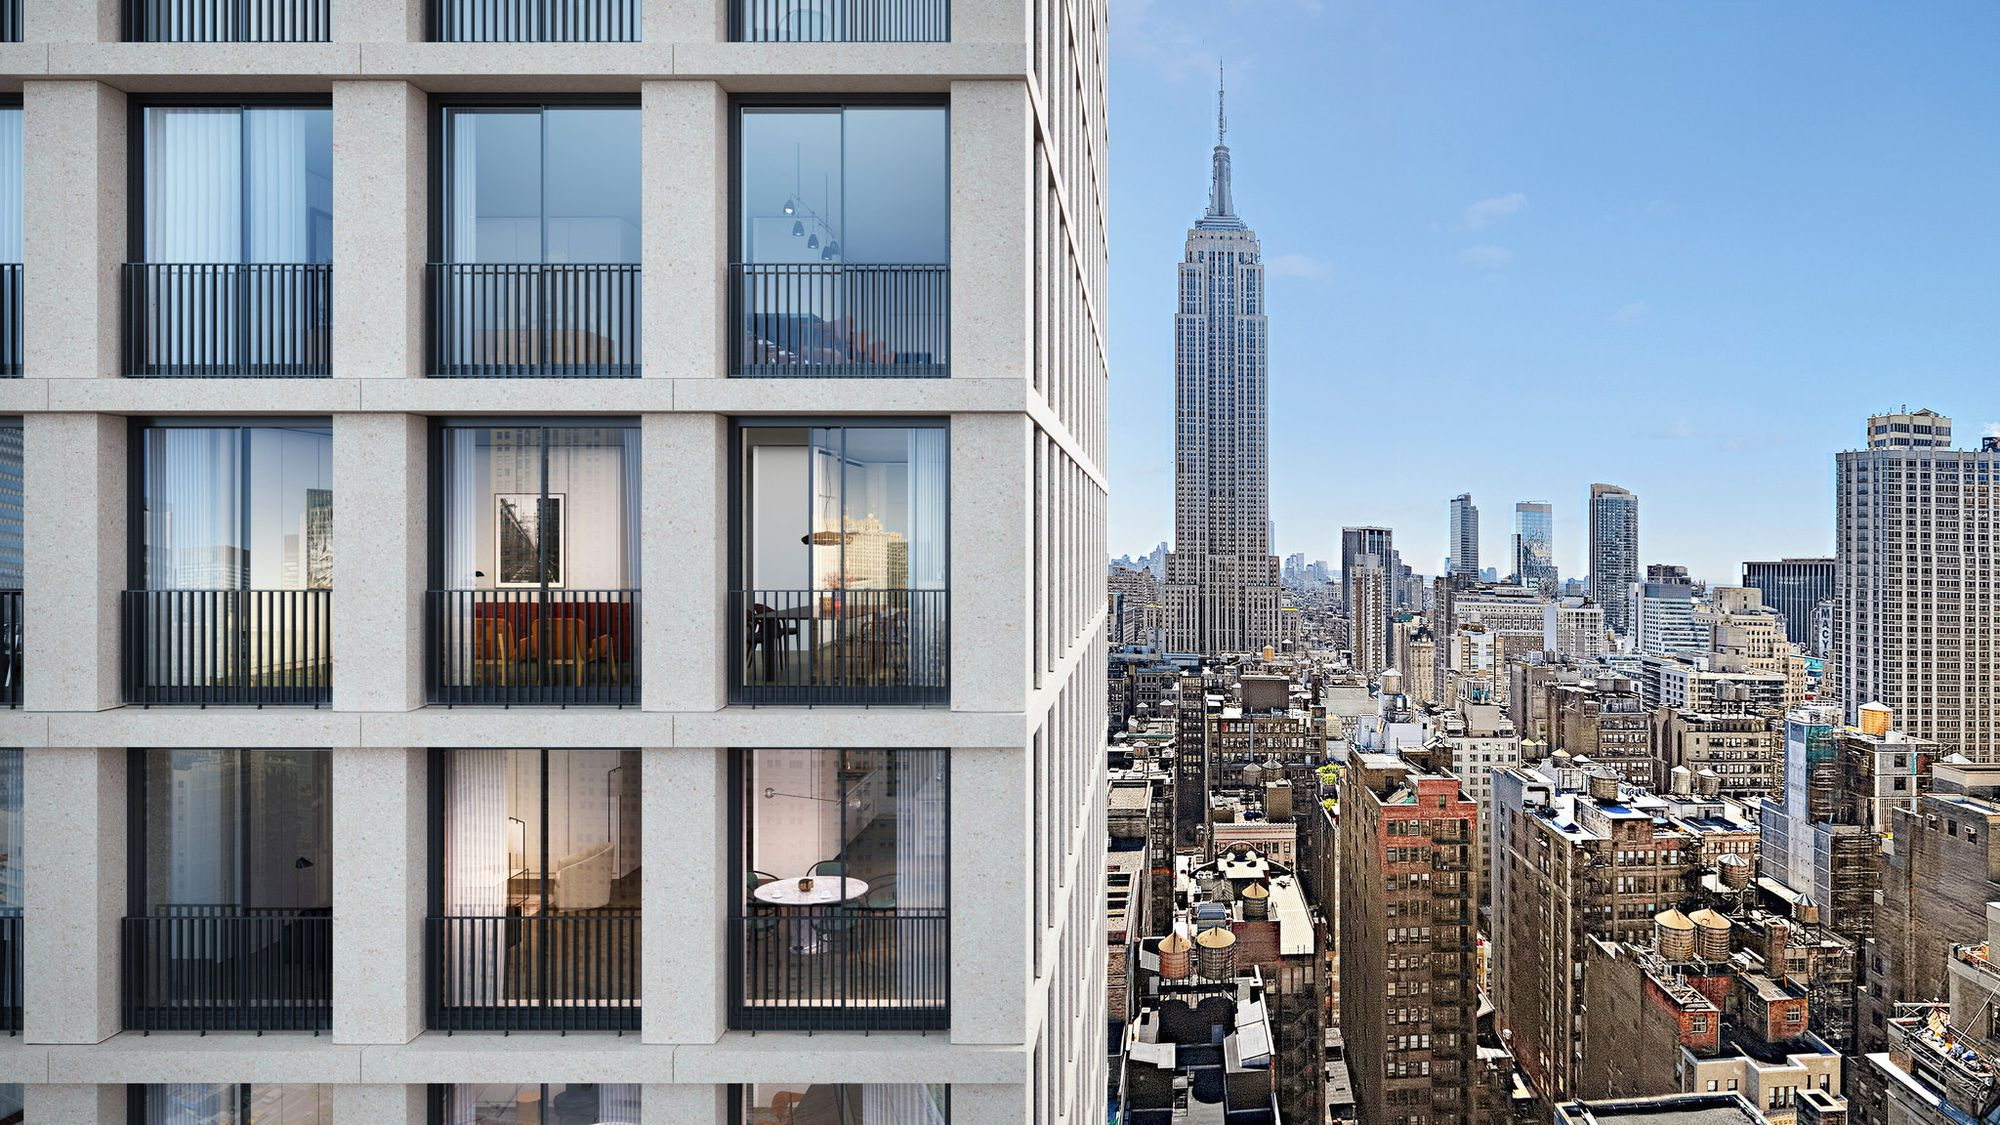 David chipperfield architects a f a s i a for Top residential architects nyc